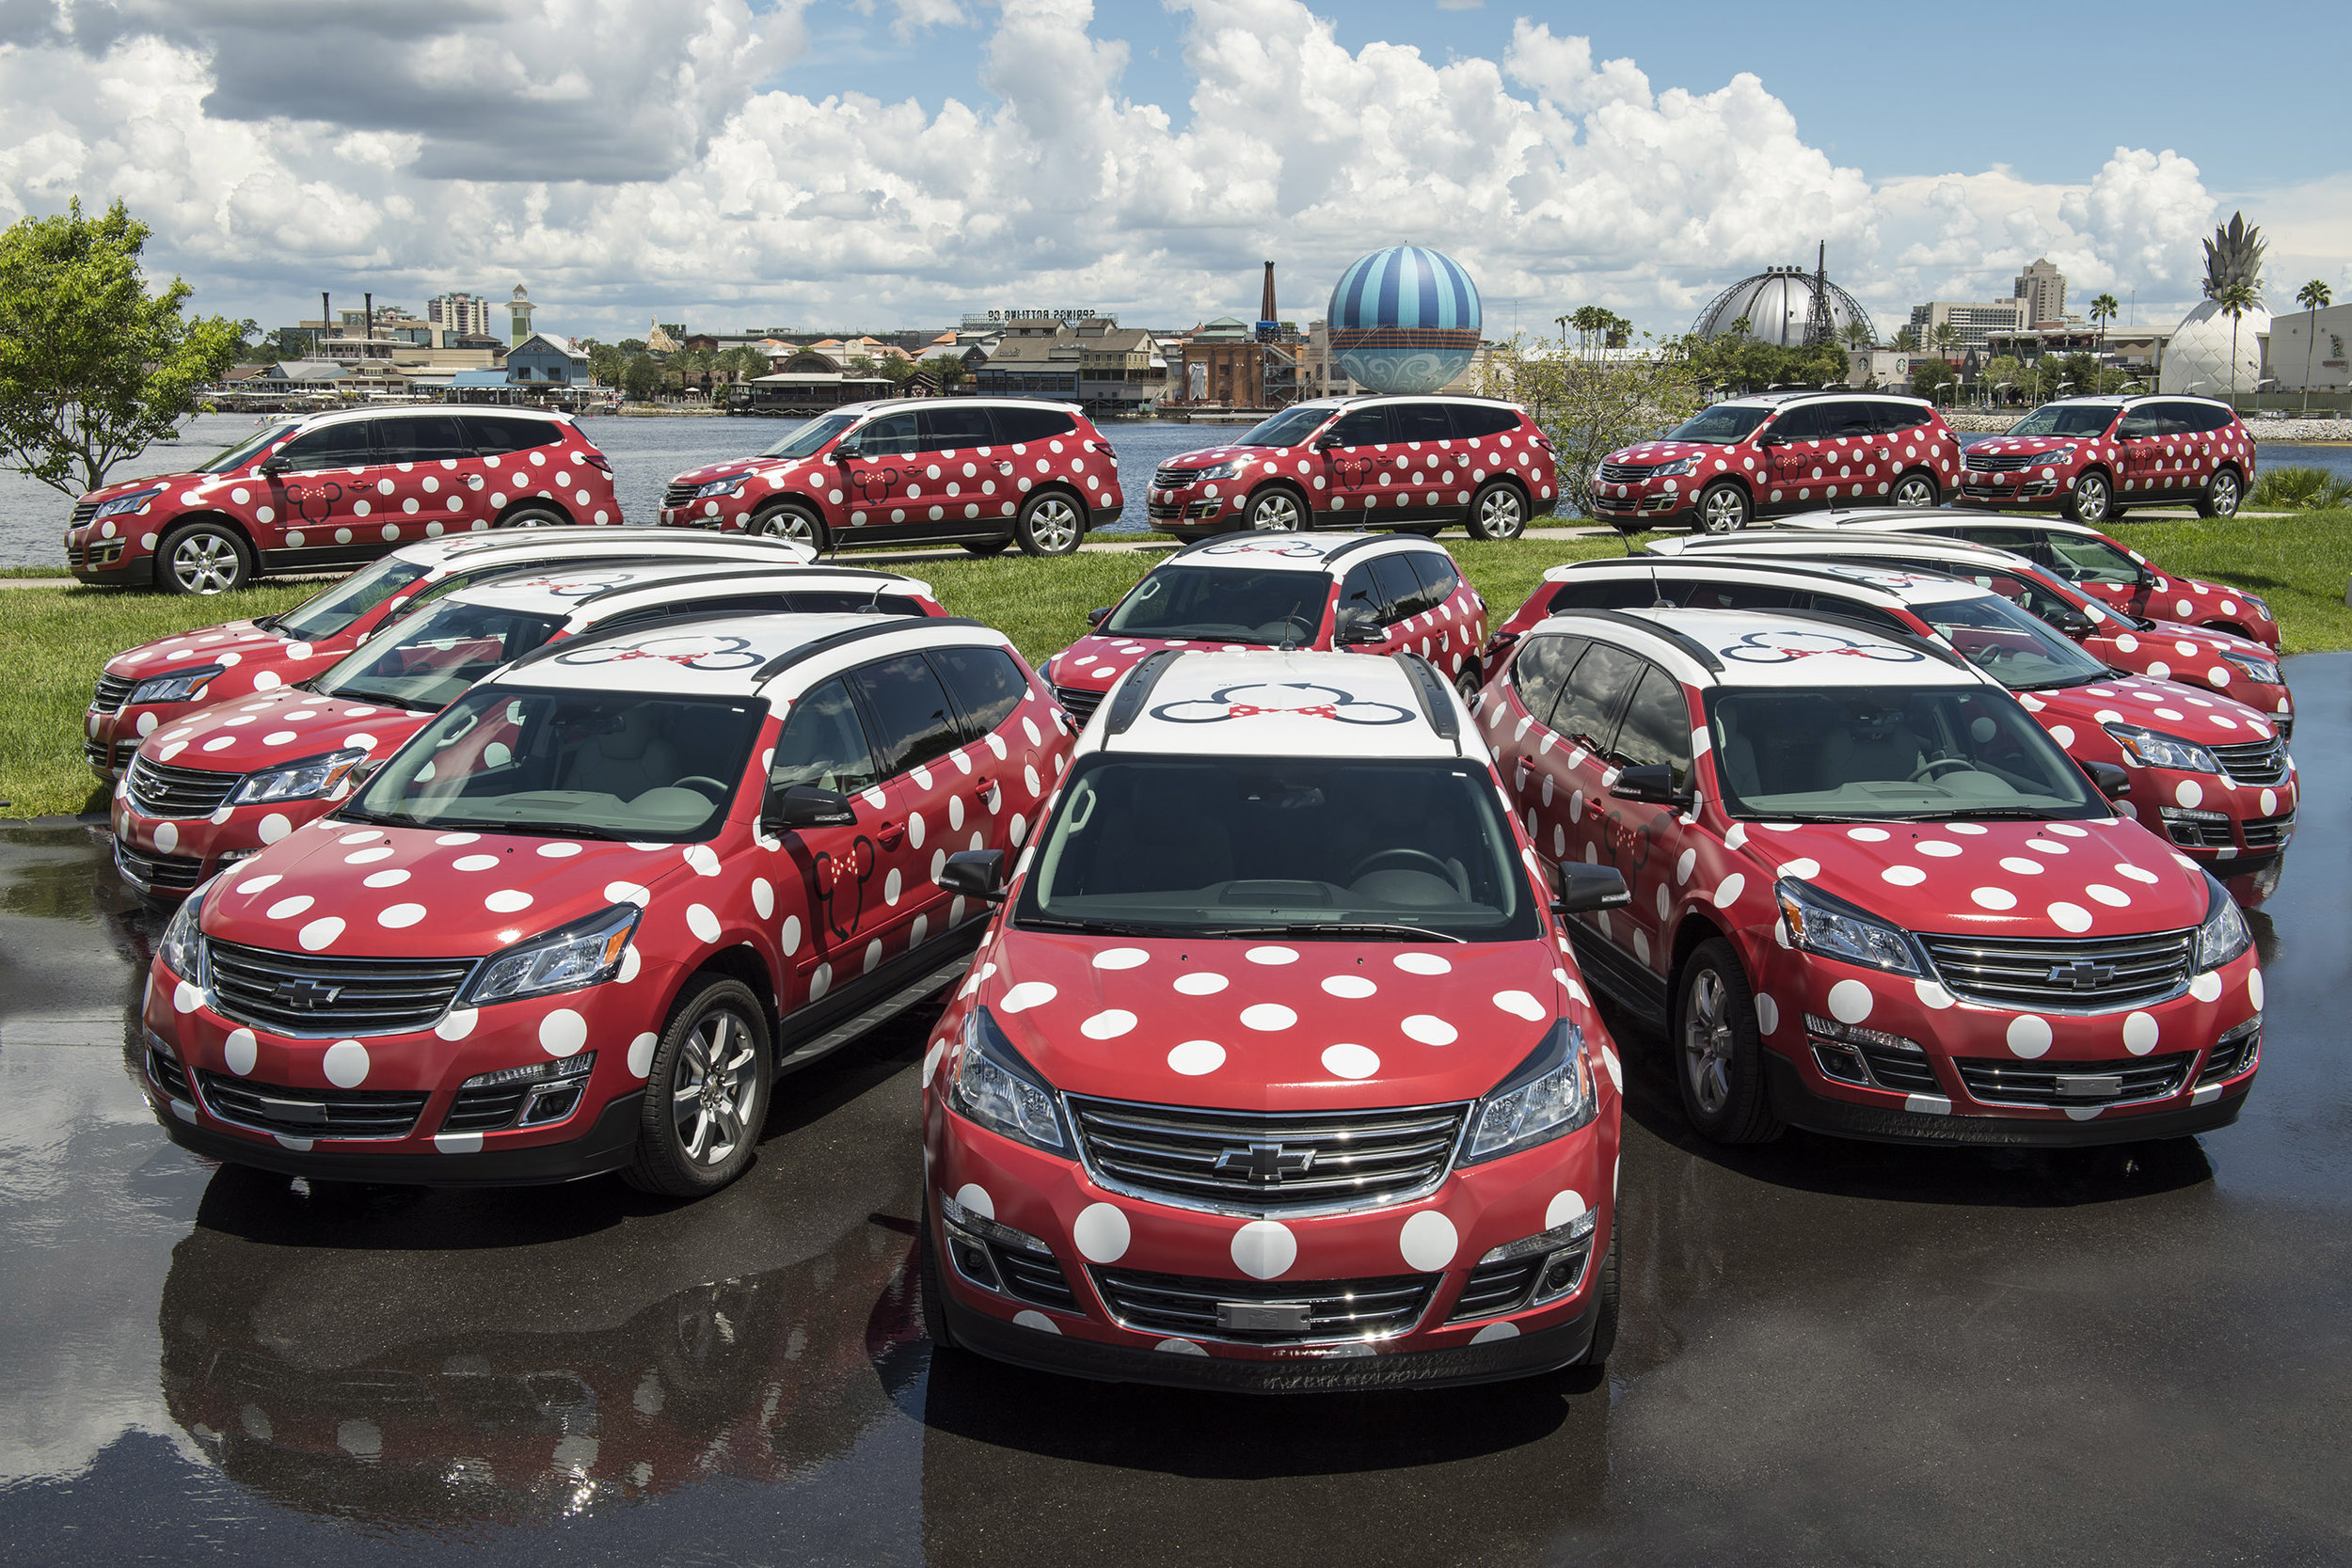 Starting later this month at Disney�s Boardwalk Resort and Disney�s Yacht & Beach Club Resorts, the Minnie Van service is a whimsical, point-to-point transportation service that will help Guests get around Walt Disney World Resort in a jiffy. Guests can order their own private Disney vehicle right from their smartphone and a Disney Cast Member will drive them wherever they want to go around Walt Disney World. (David Roark, photographer)